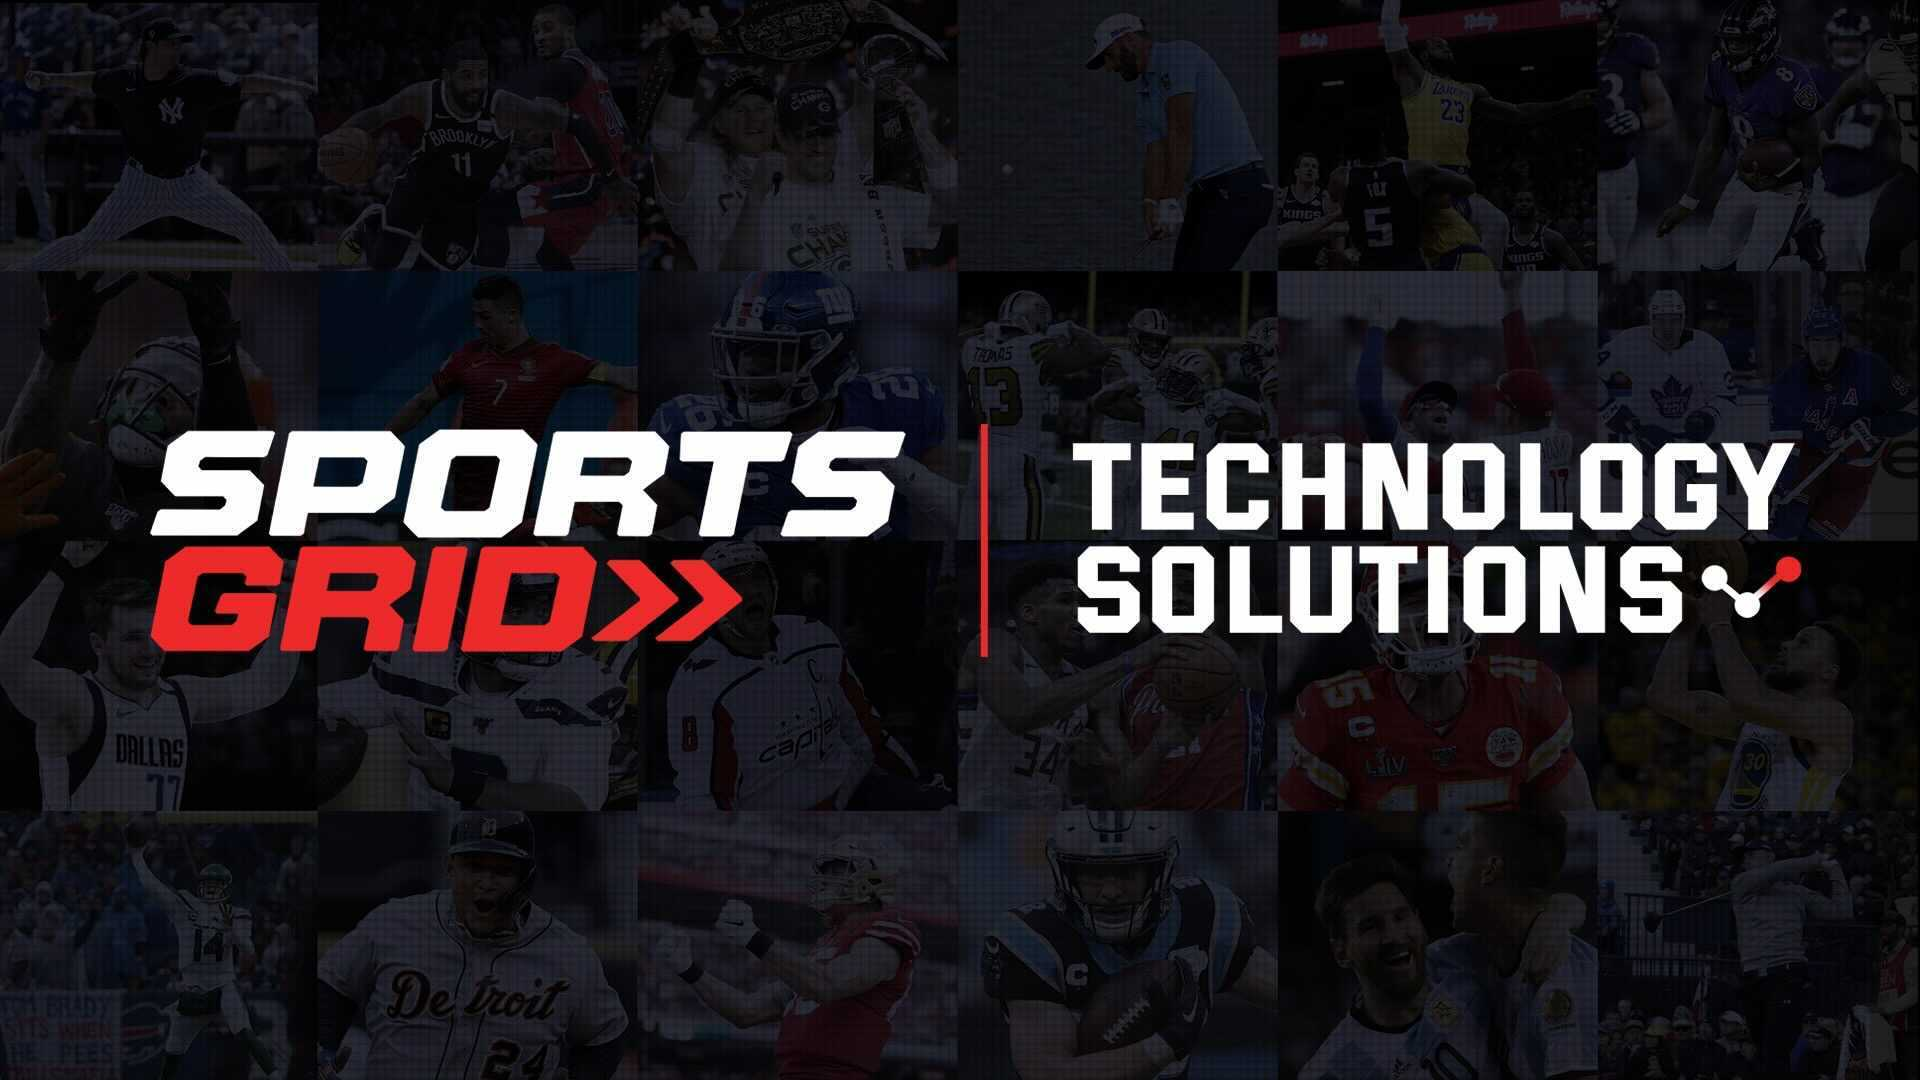 SportsGrid Technology Solutions (STS) Announces Automated Sports Betting Content Platform for Digital Publishers